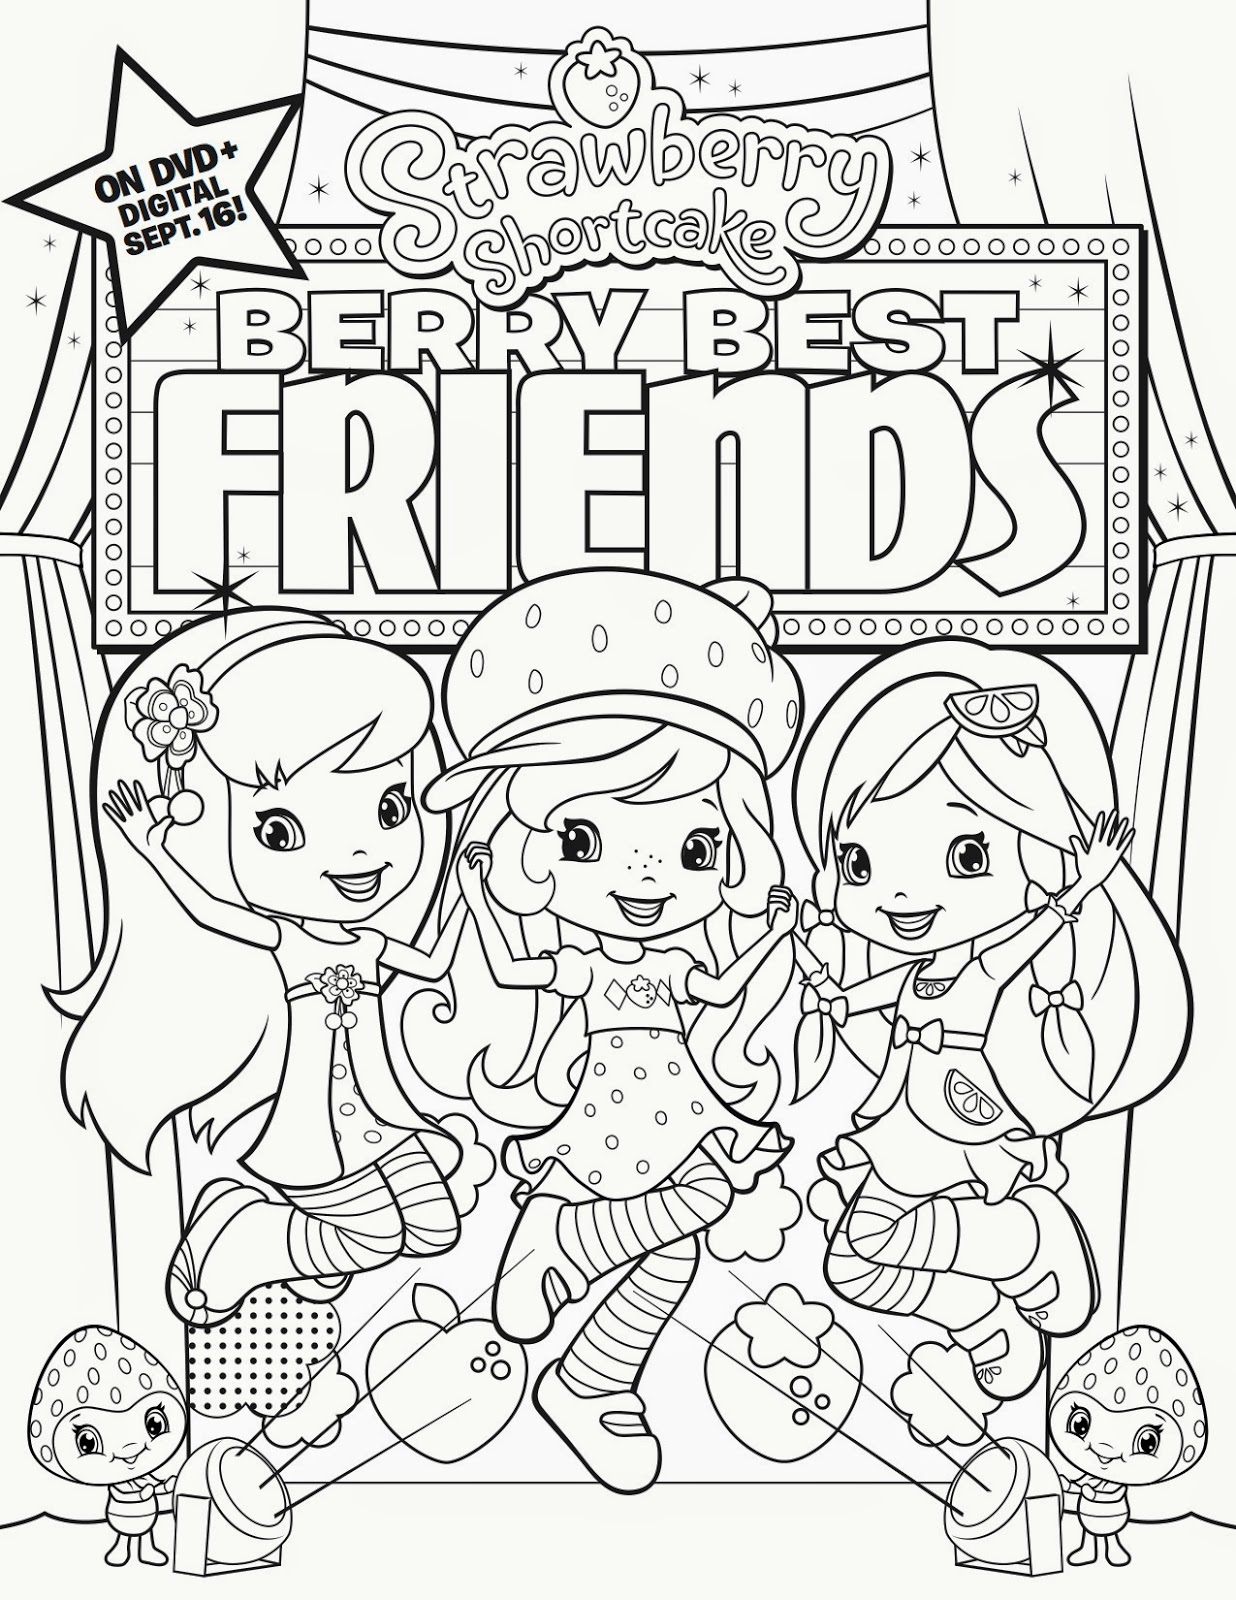 Heck Of A Bunch: Strawberry Shortcake: Berry Best Friends